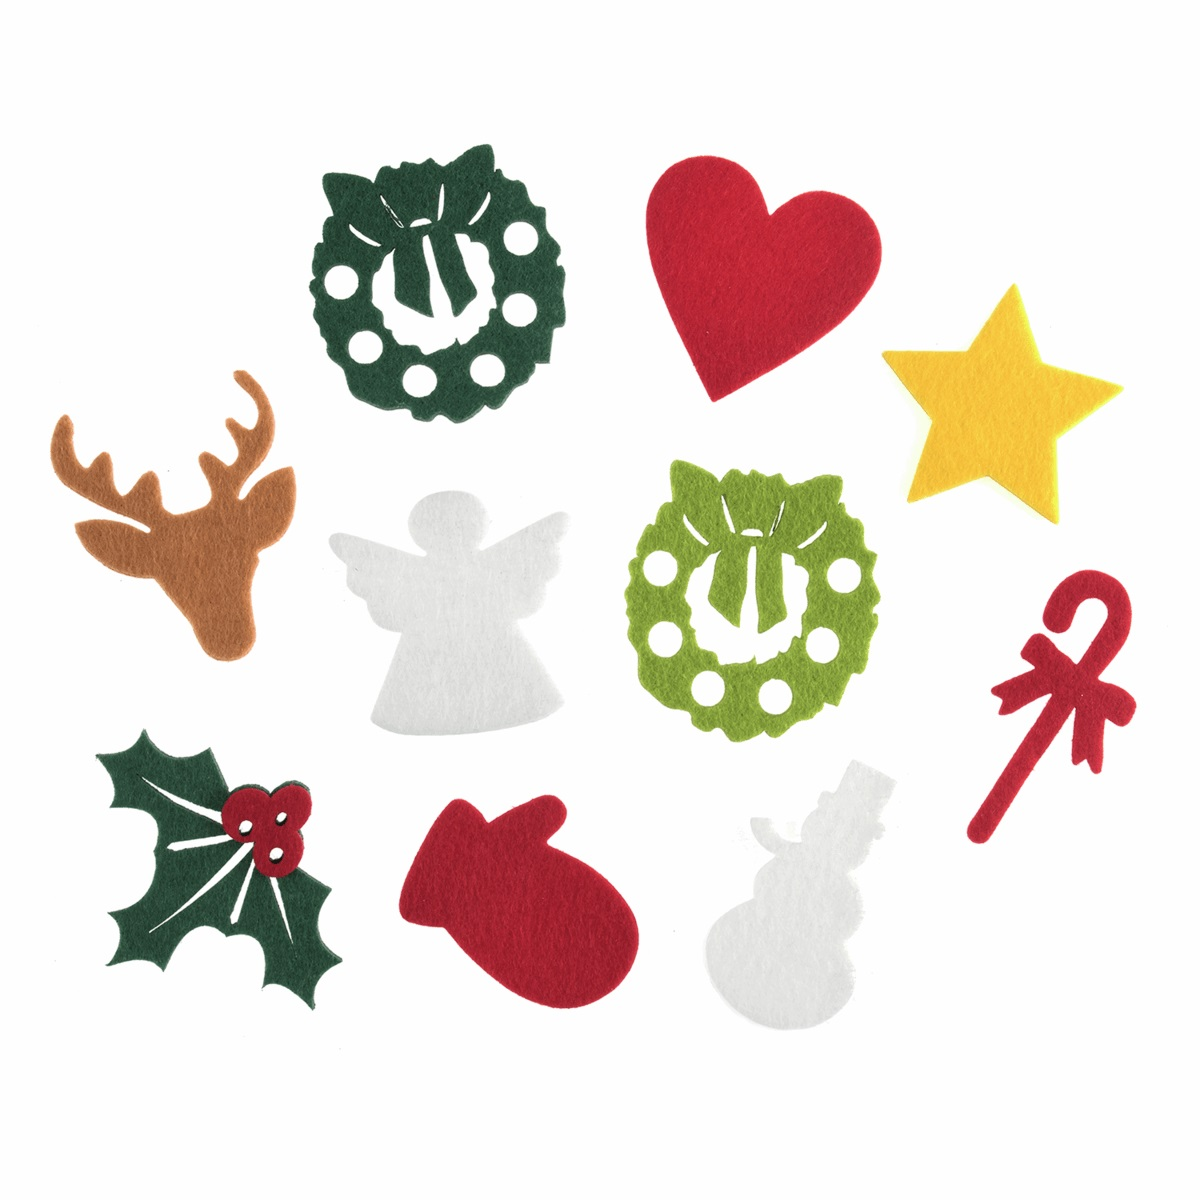 Christmas Felt Shapes, Approx 6cm, Pack of 18 (9 designs)